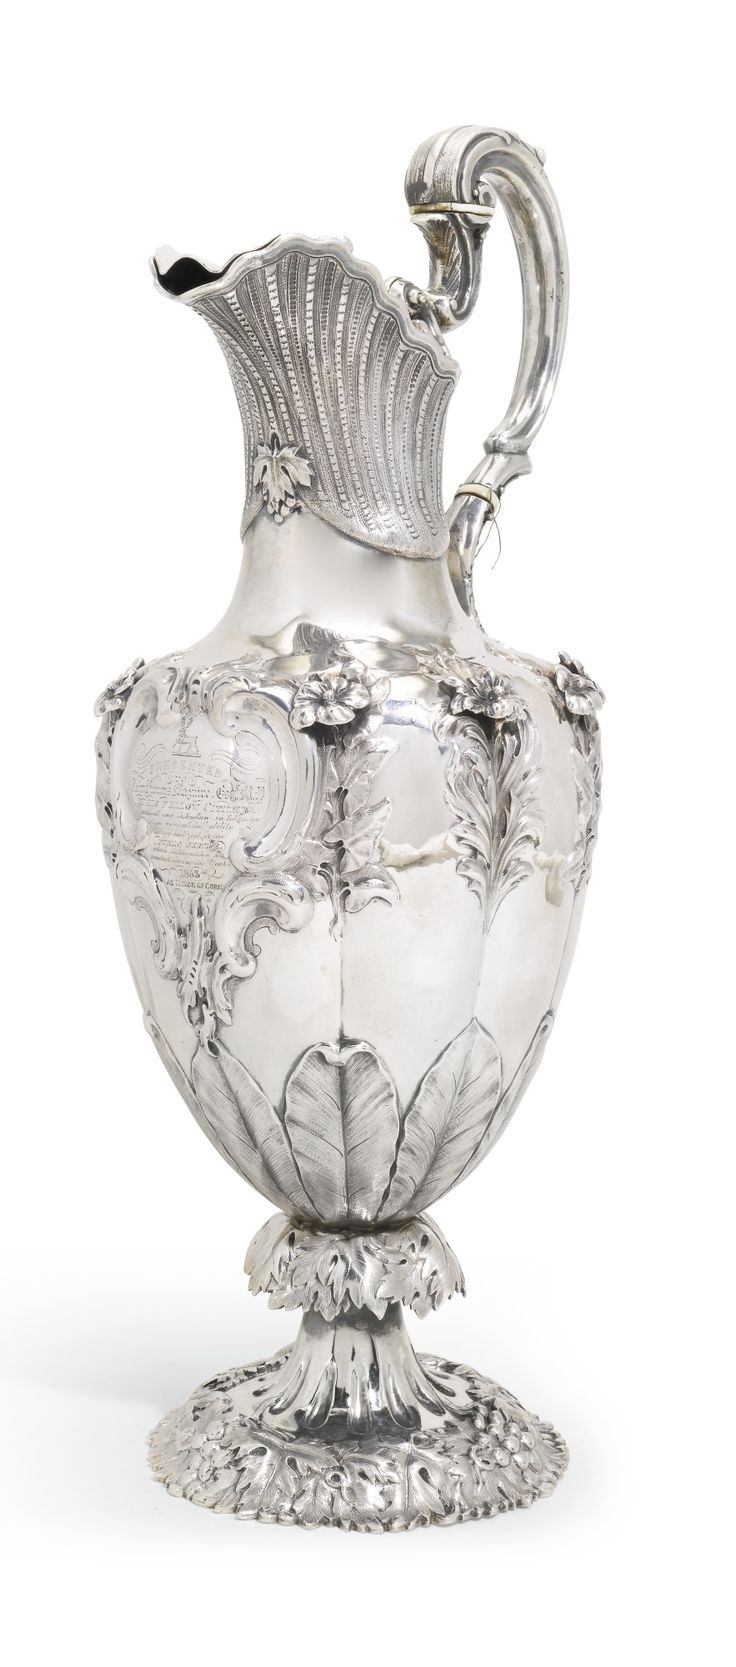 A Victorian silver presentation ewer, Robert W. Smith, Dublin, 1843 the inscribed and crested fluted vase-shaped body chased with foliage and applied with cast flowerheads, hinged lid, the silver handle with ivory fillets